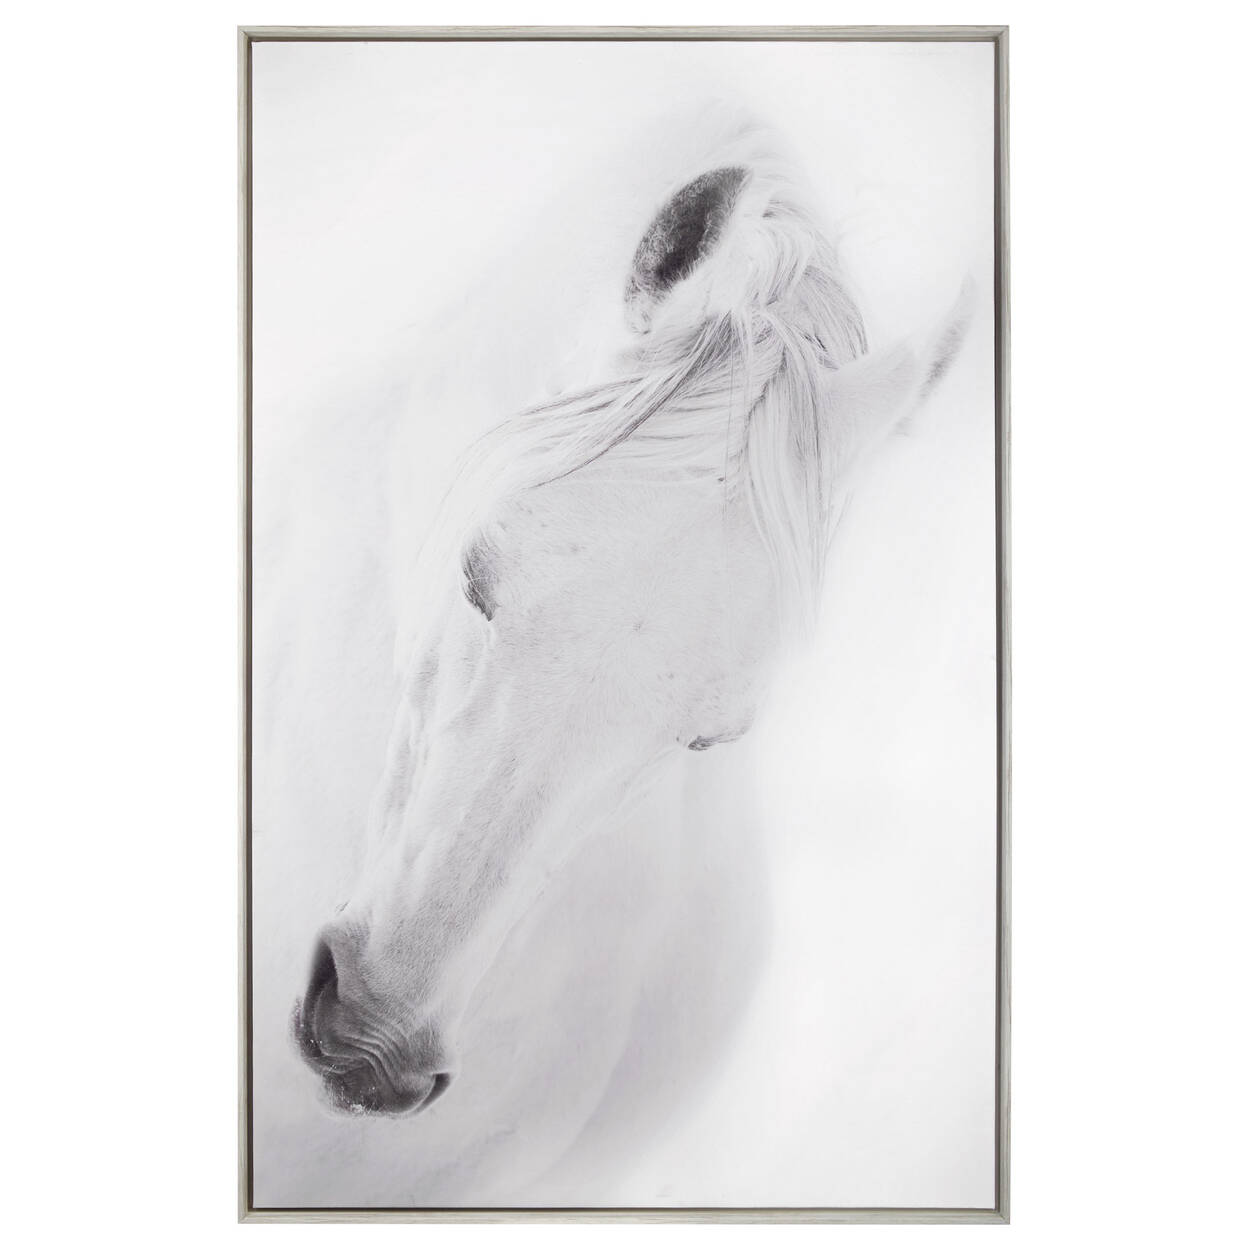 Oversized Printed Horse Framed Art | Bouclair.com